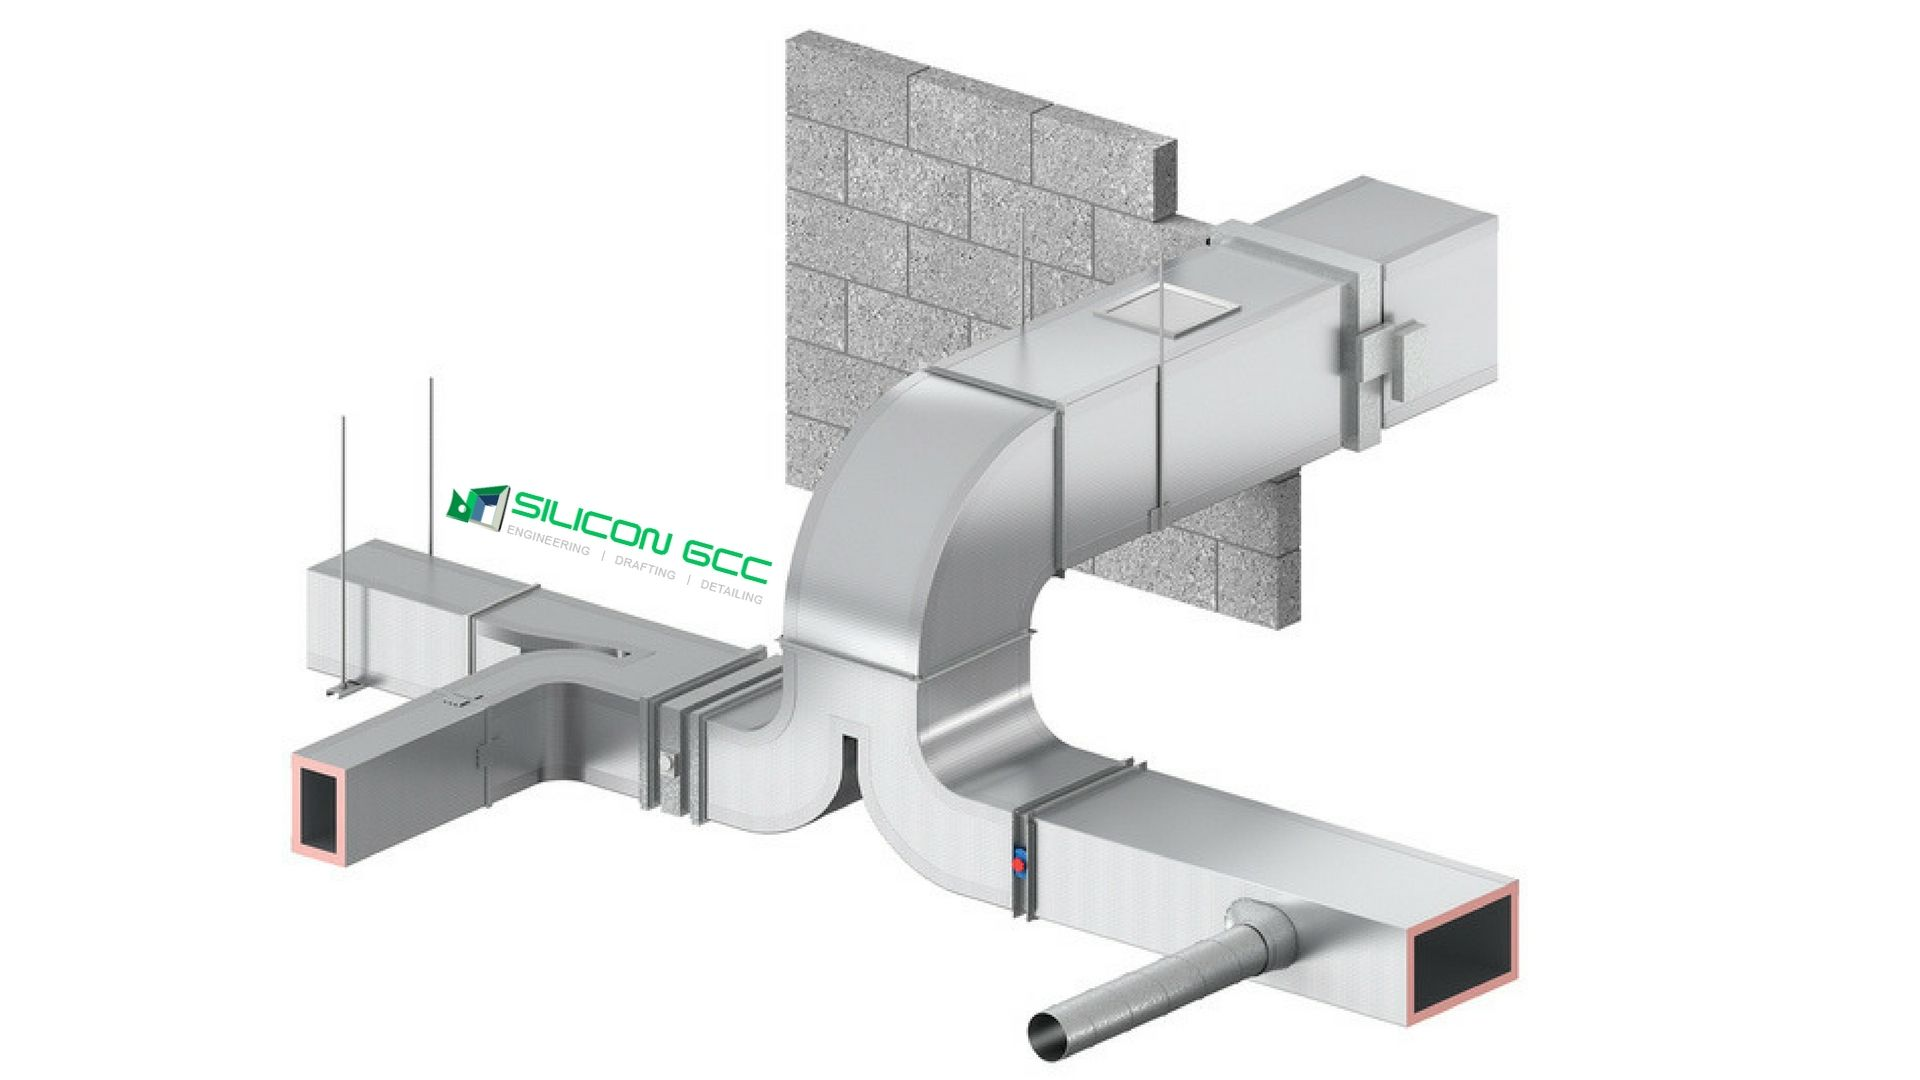 small resolution of hvac duct components incorporate programmed drawing of extensive rectangular and circular duct fittings fire dampers flex ducts control dampers and